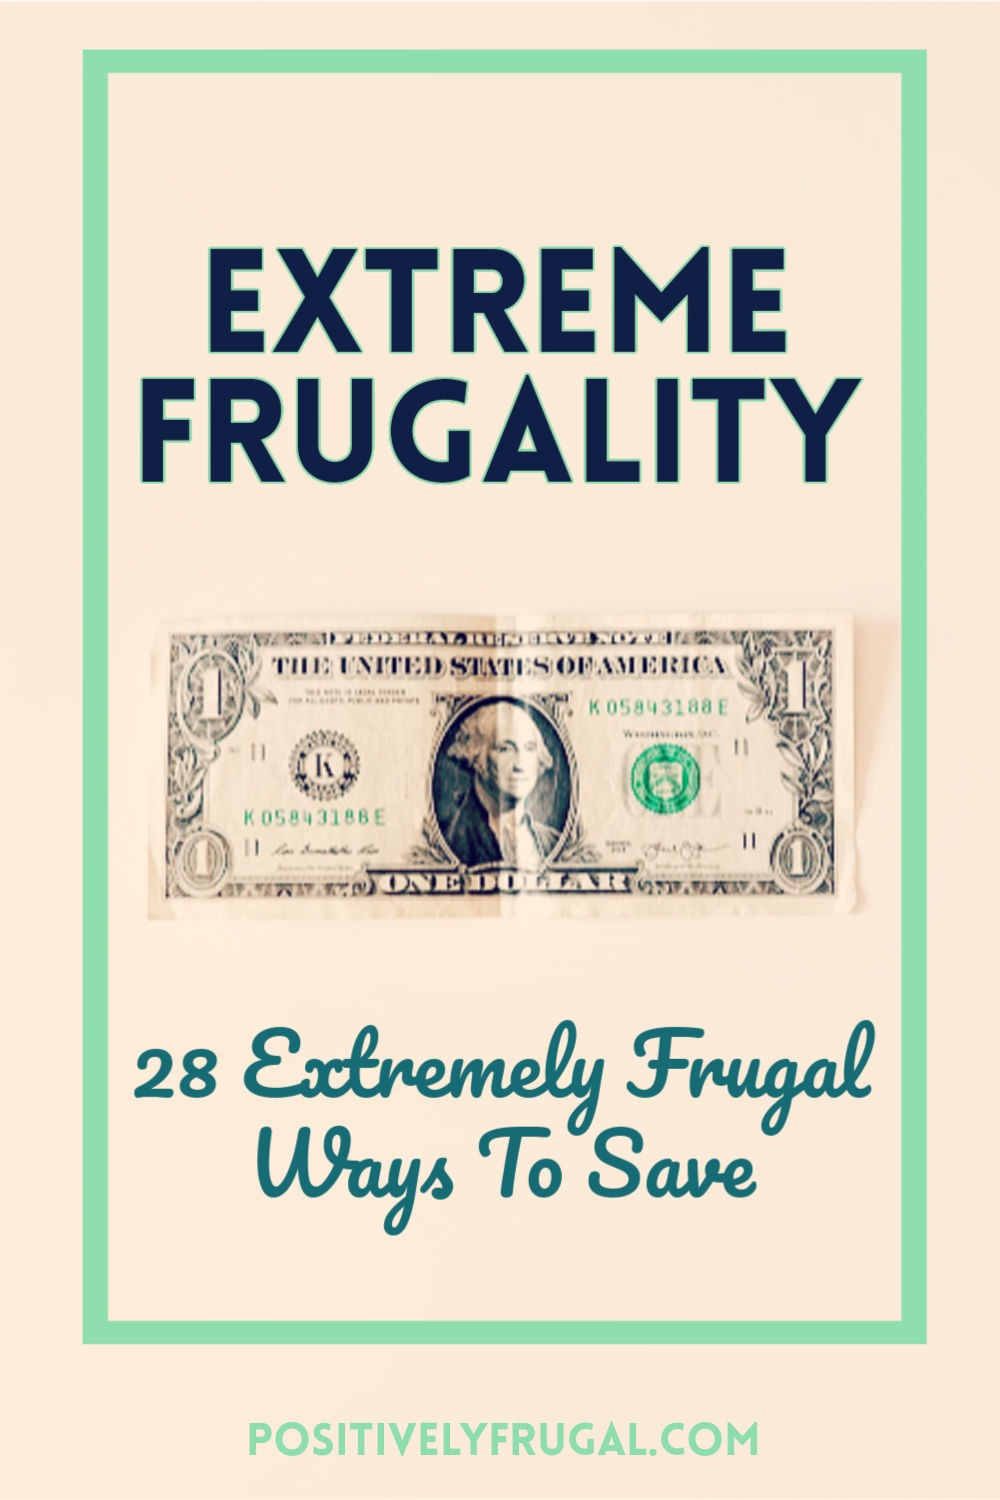 Extreme Frugality Extremely Frugal Ways To Save by PositivelyFrugal.com